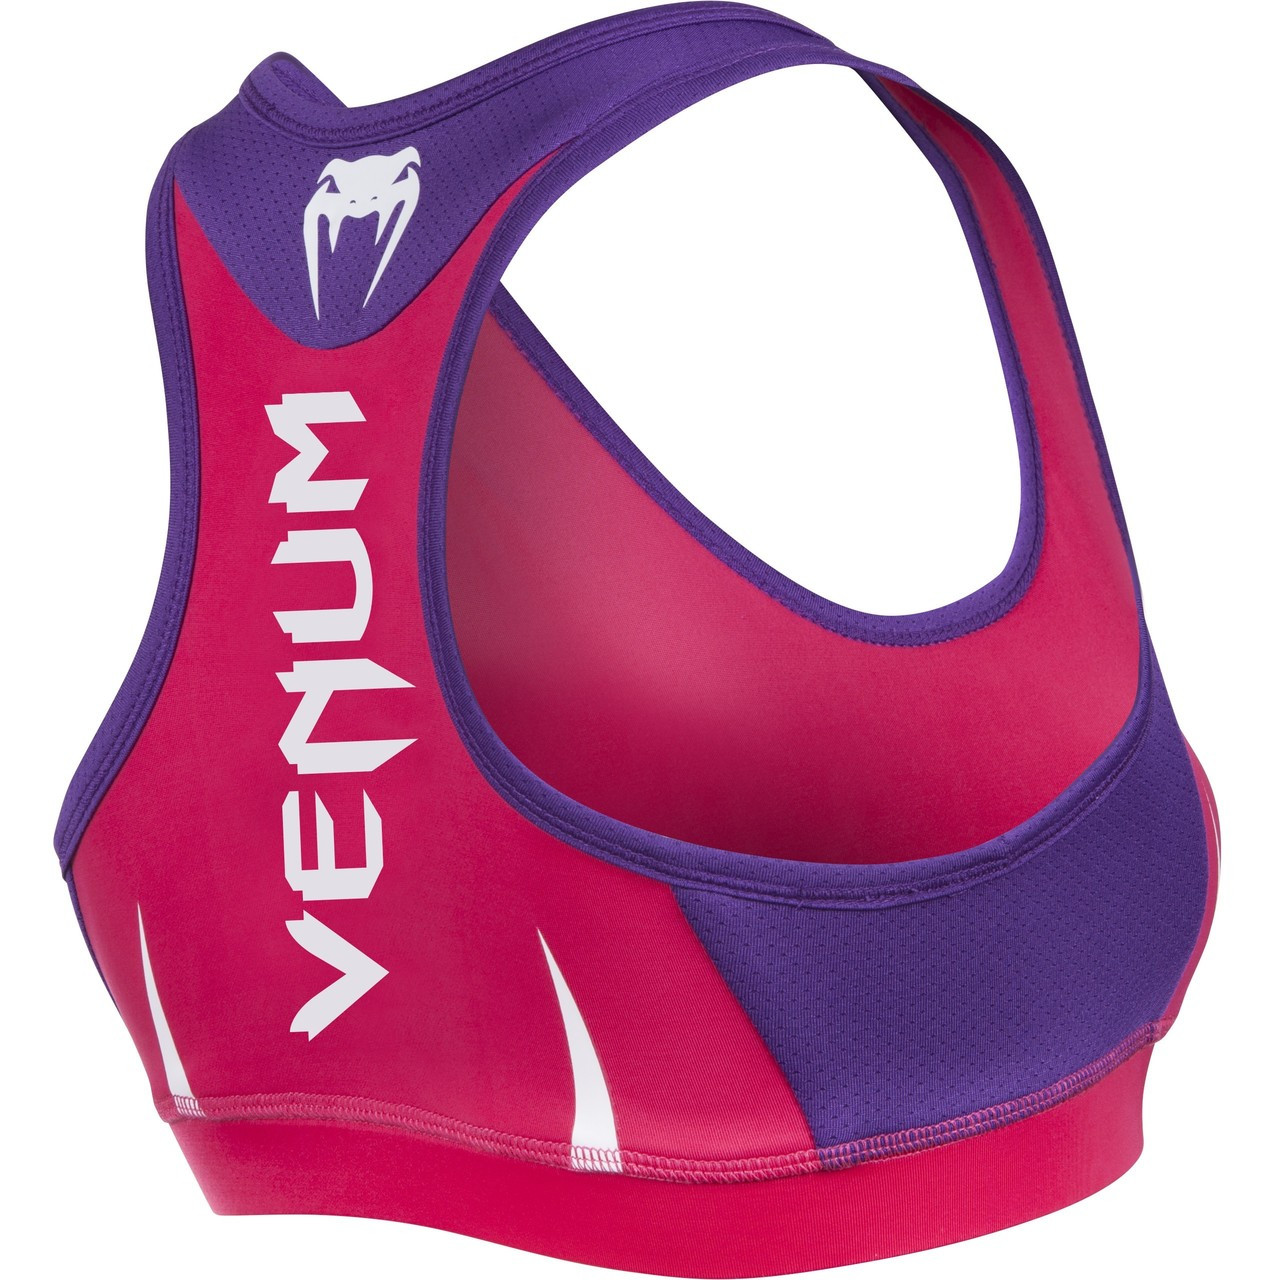 Venum Body Fit Top only available at www.thejiujitsushop.com  Enjoy Free Shipping from The Jiu Jitsu Shop today!